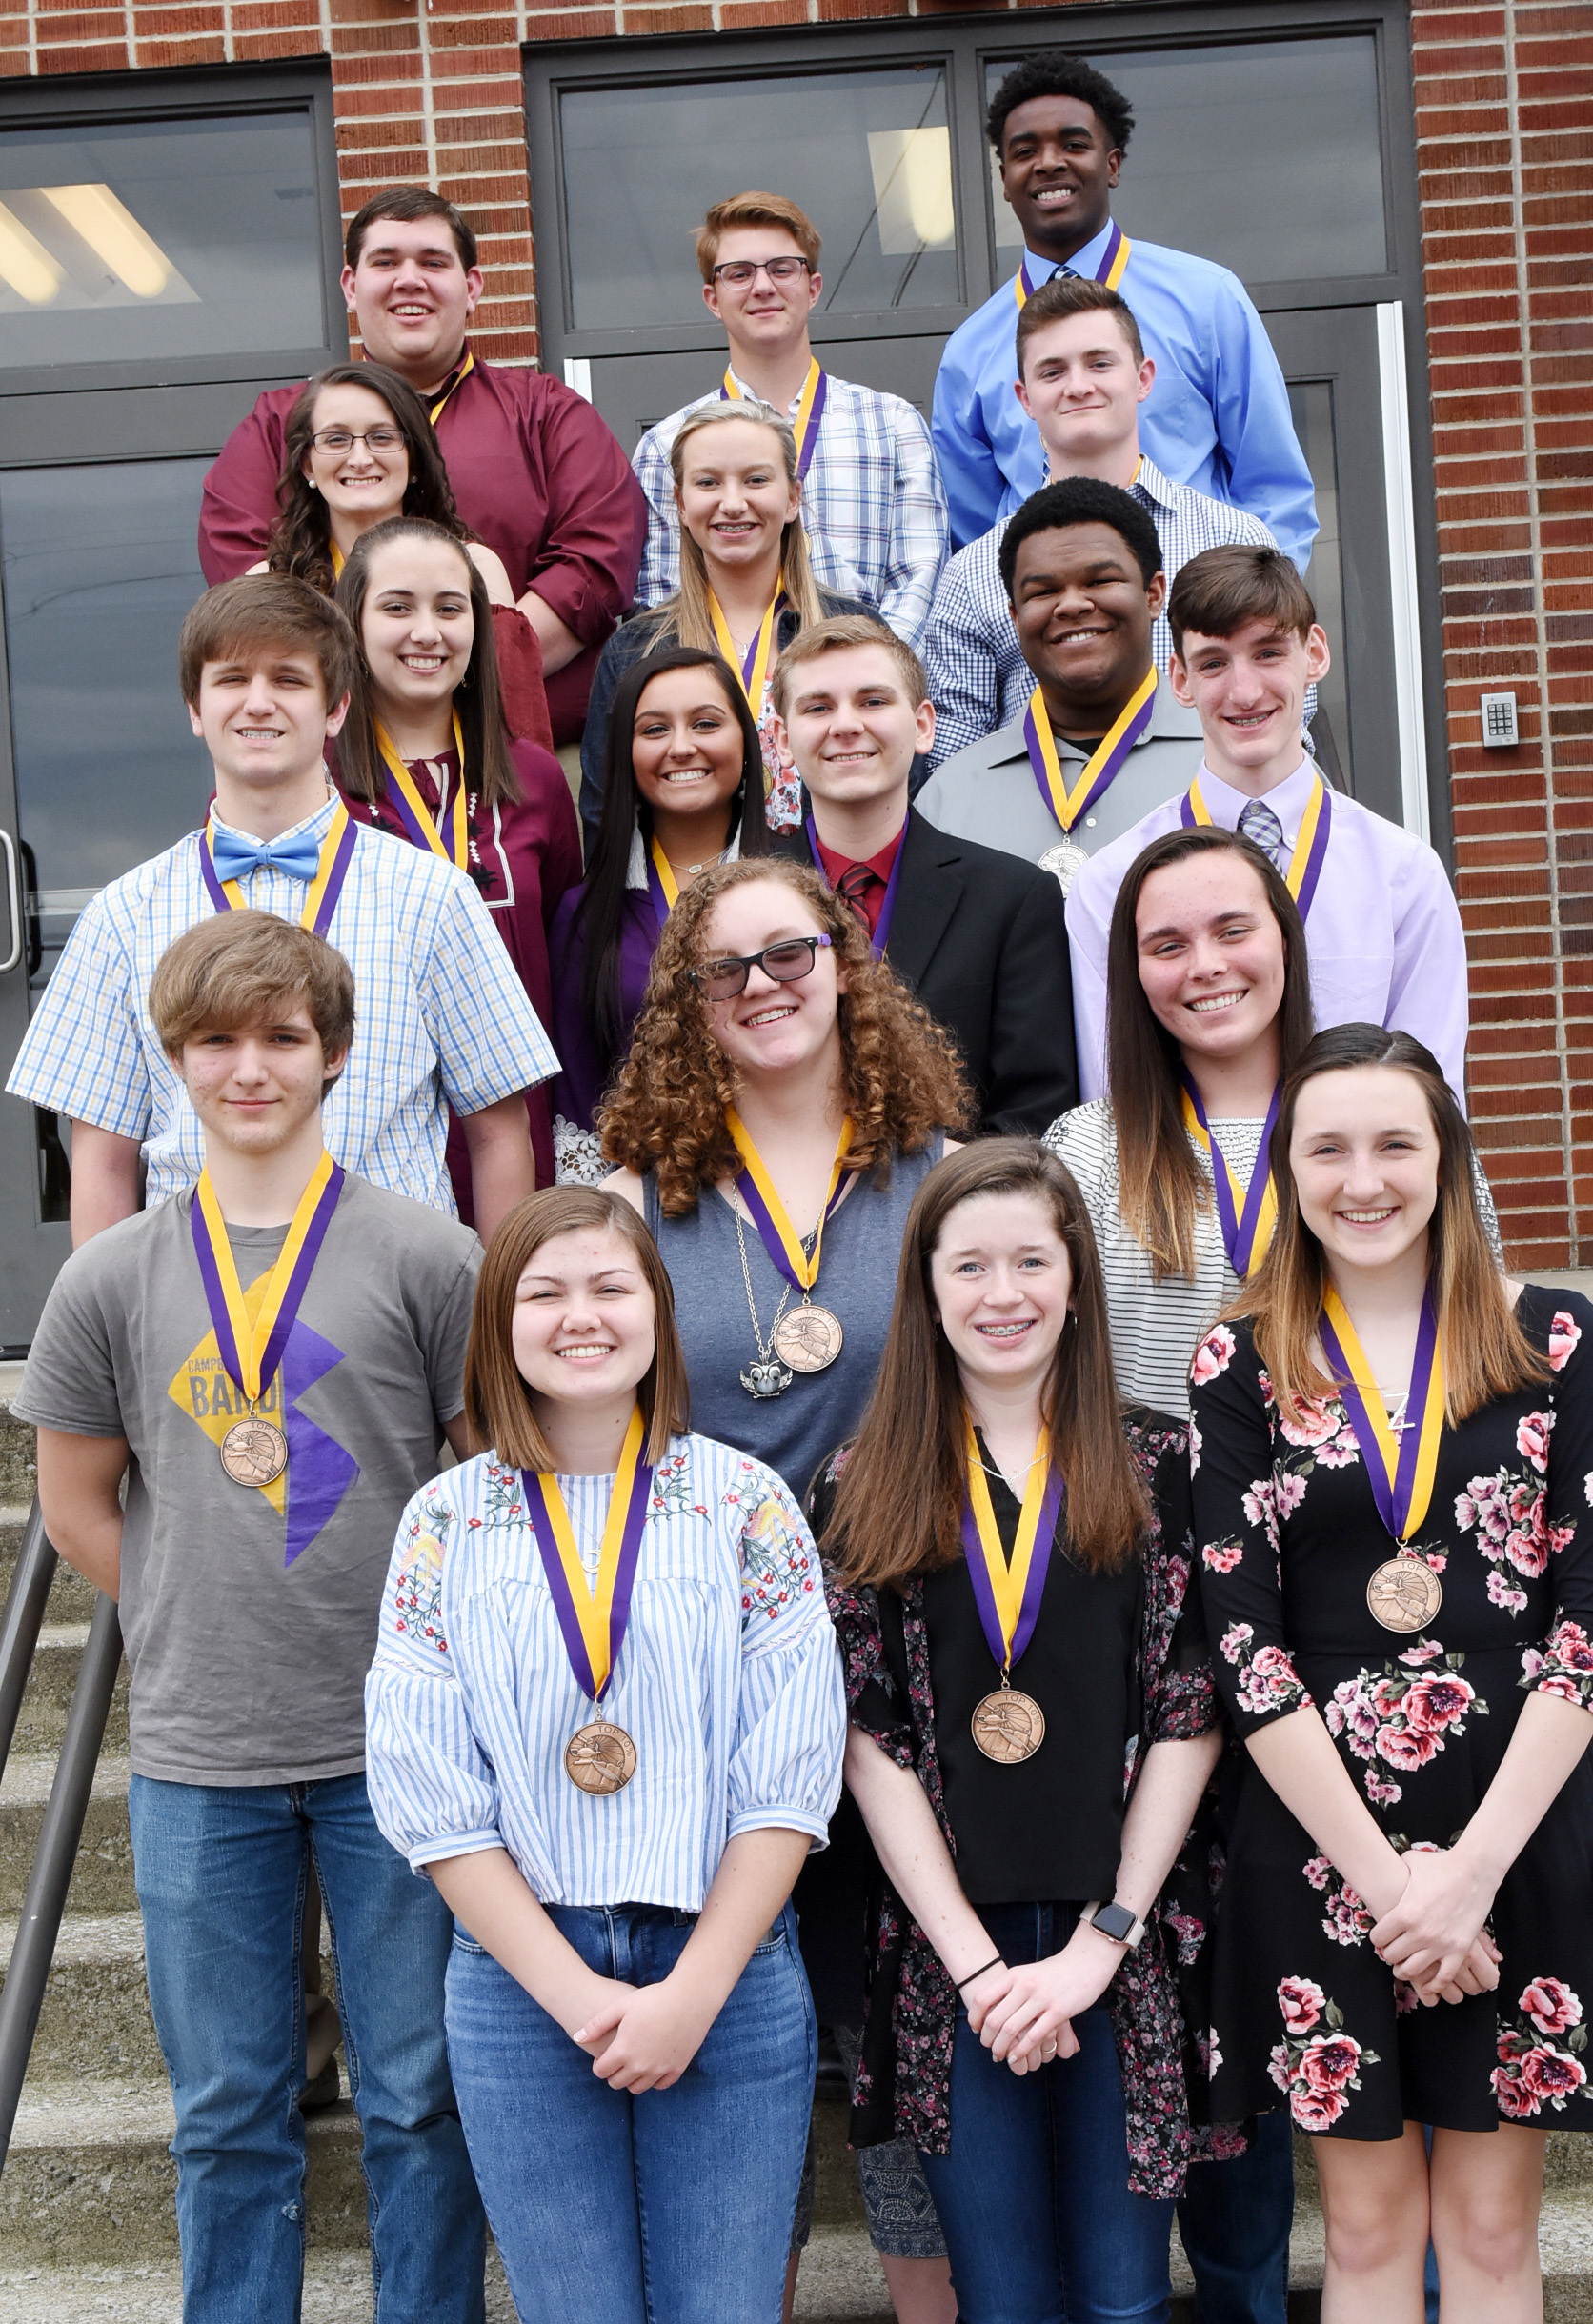 CHS students honored at this year's Top 10 percent banquet are, from left, front, sophomores Shelby Smith, Gracyne Hash and Zoe McAninch. Second row, sophomores Tristin Lopez, Emily Rodgers and Katelyn Miller. Third row, juniors Myles Murrell, Brandon Greer and Ian McAninch. Fourth row, juniors Elizabeth Sullivan, Reagan Knight and Jeremiah Jackson. Fifth row, seniors Kimberly Harden, Madison Dial and Bryce Richardson. Back, seniors Ryan Wiedewitsch, Alex Doss and Chanson Atkinson. Students who were unable to attend the banquet include sophomores Blake Allen and Conner Riley, junior Ryan Kearney and senior Samuel Kessler.